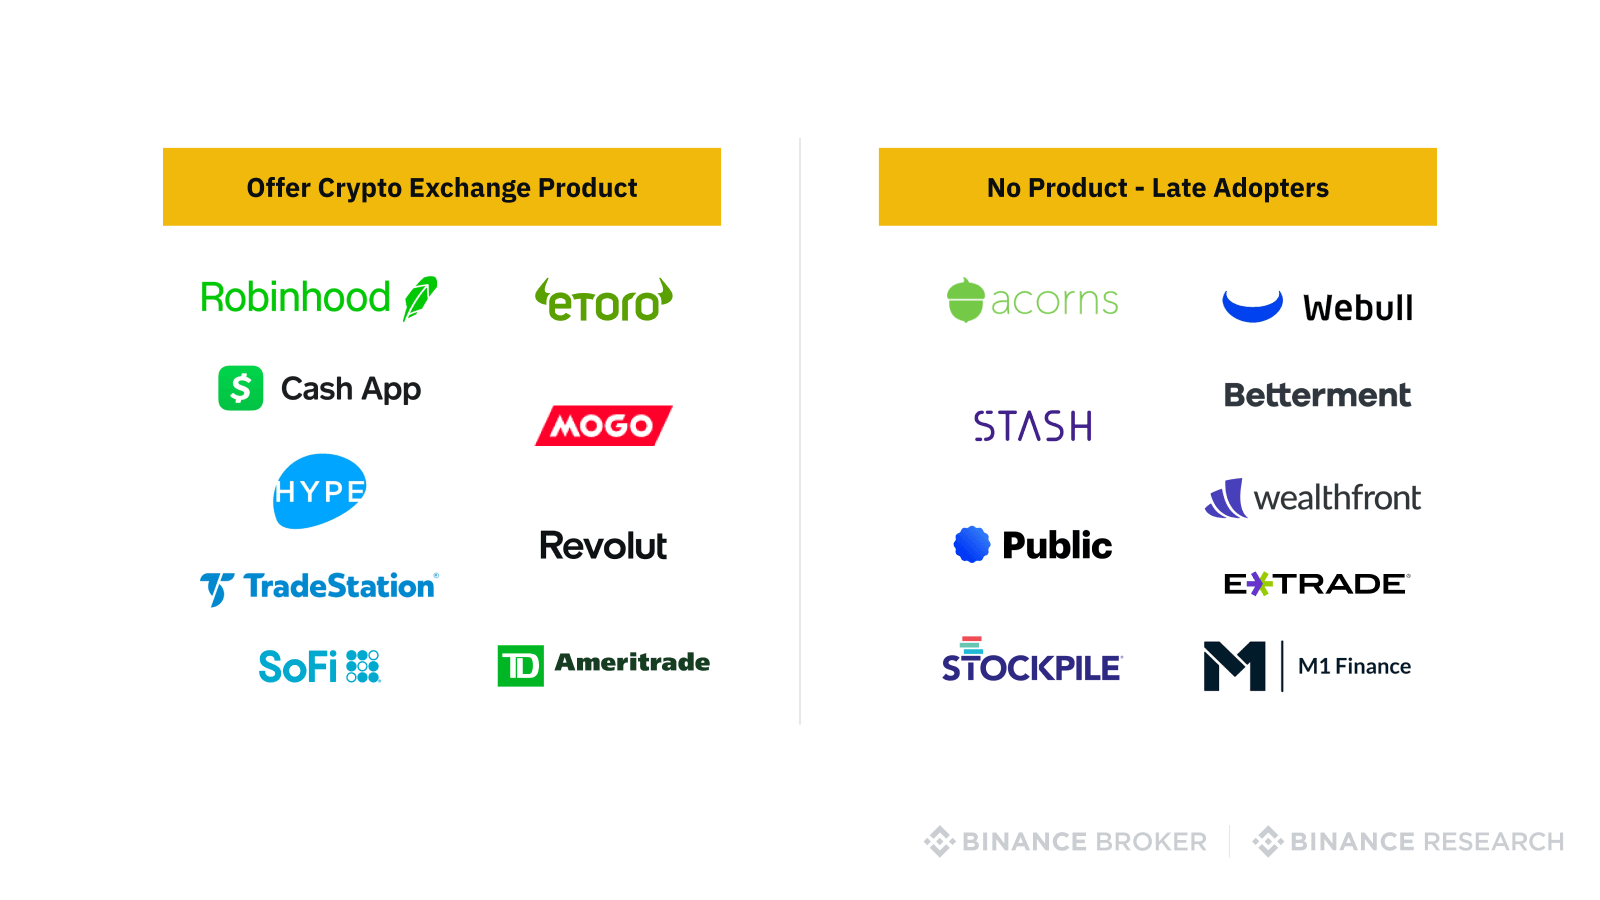 Traditional and fintech companies offering crypto products